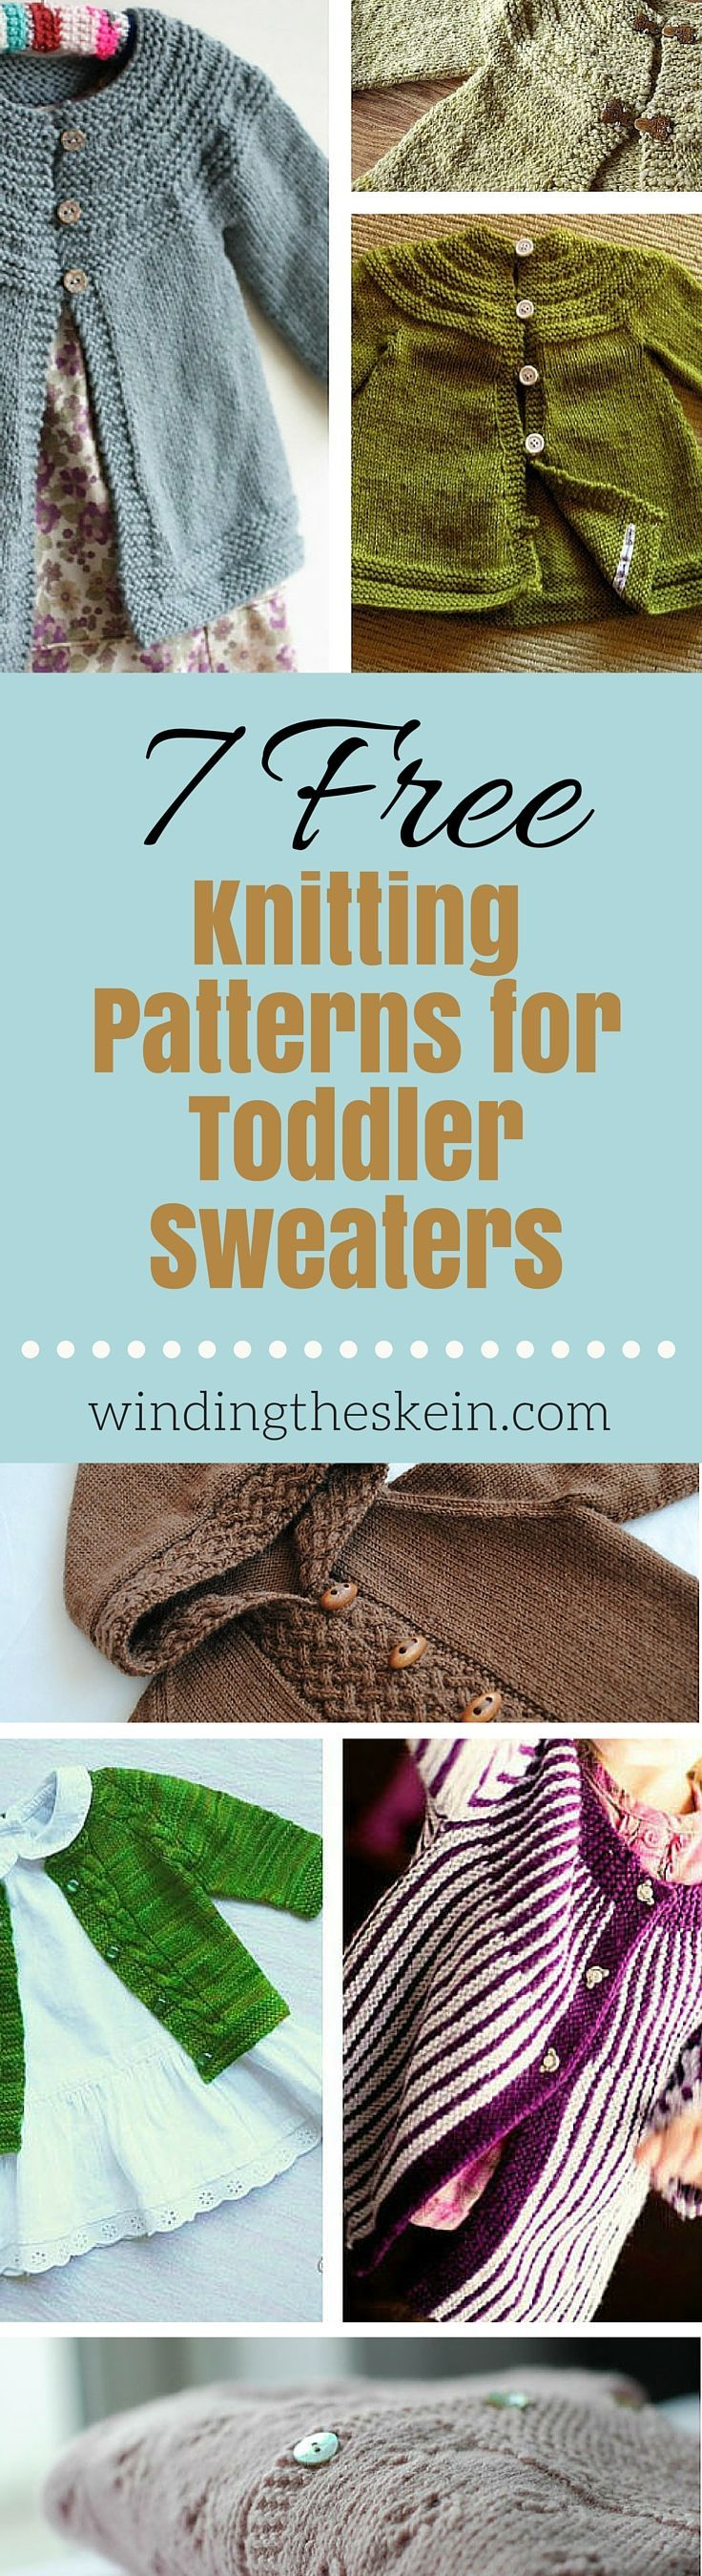 7 free knit toddler patterns More